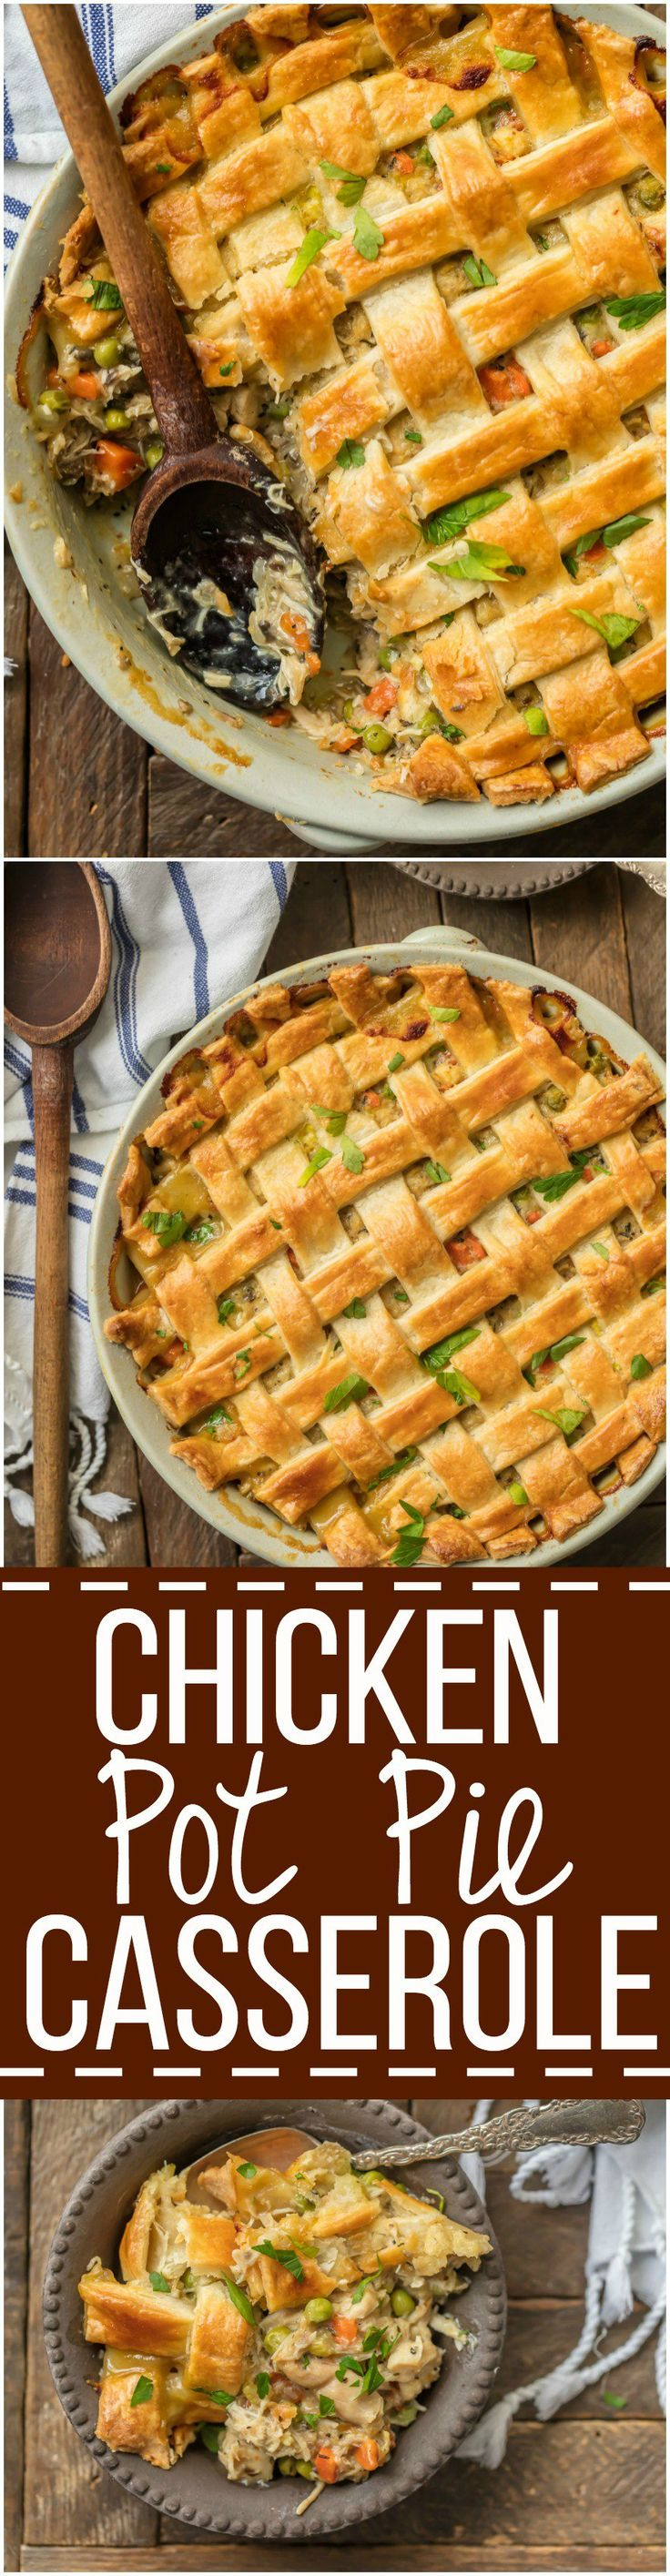 This crazy good CHICKEN POT PIE CASSEROLE is the ultimate easy comfort food! This AMAZING pot pie is loaded with carrots, peas, chicken, and topped with flakey pie crust. OBSESSED. via @beckygallhardin